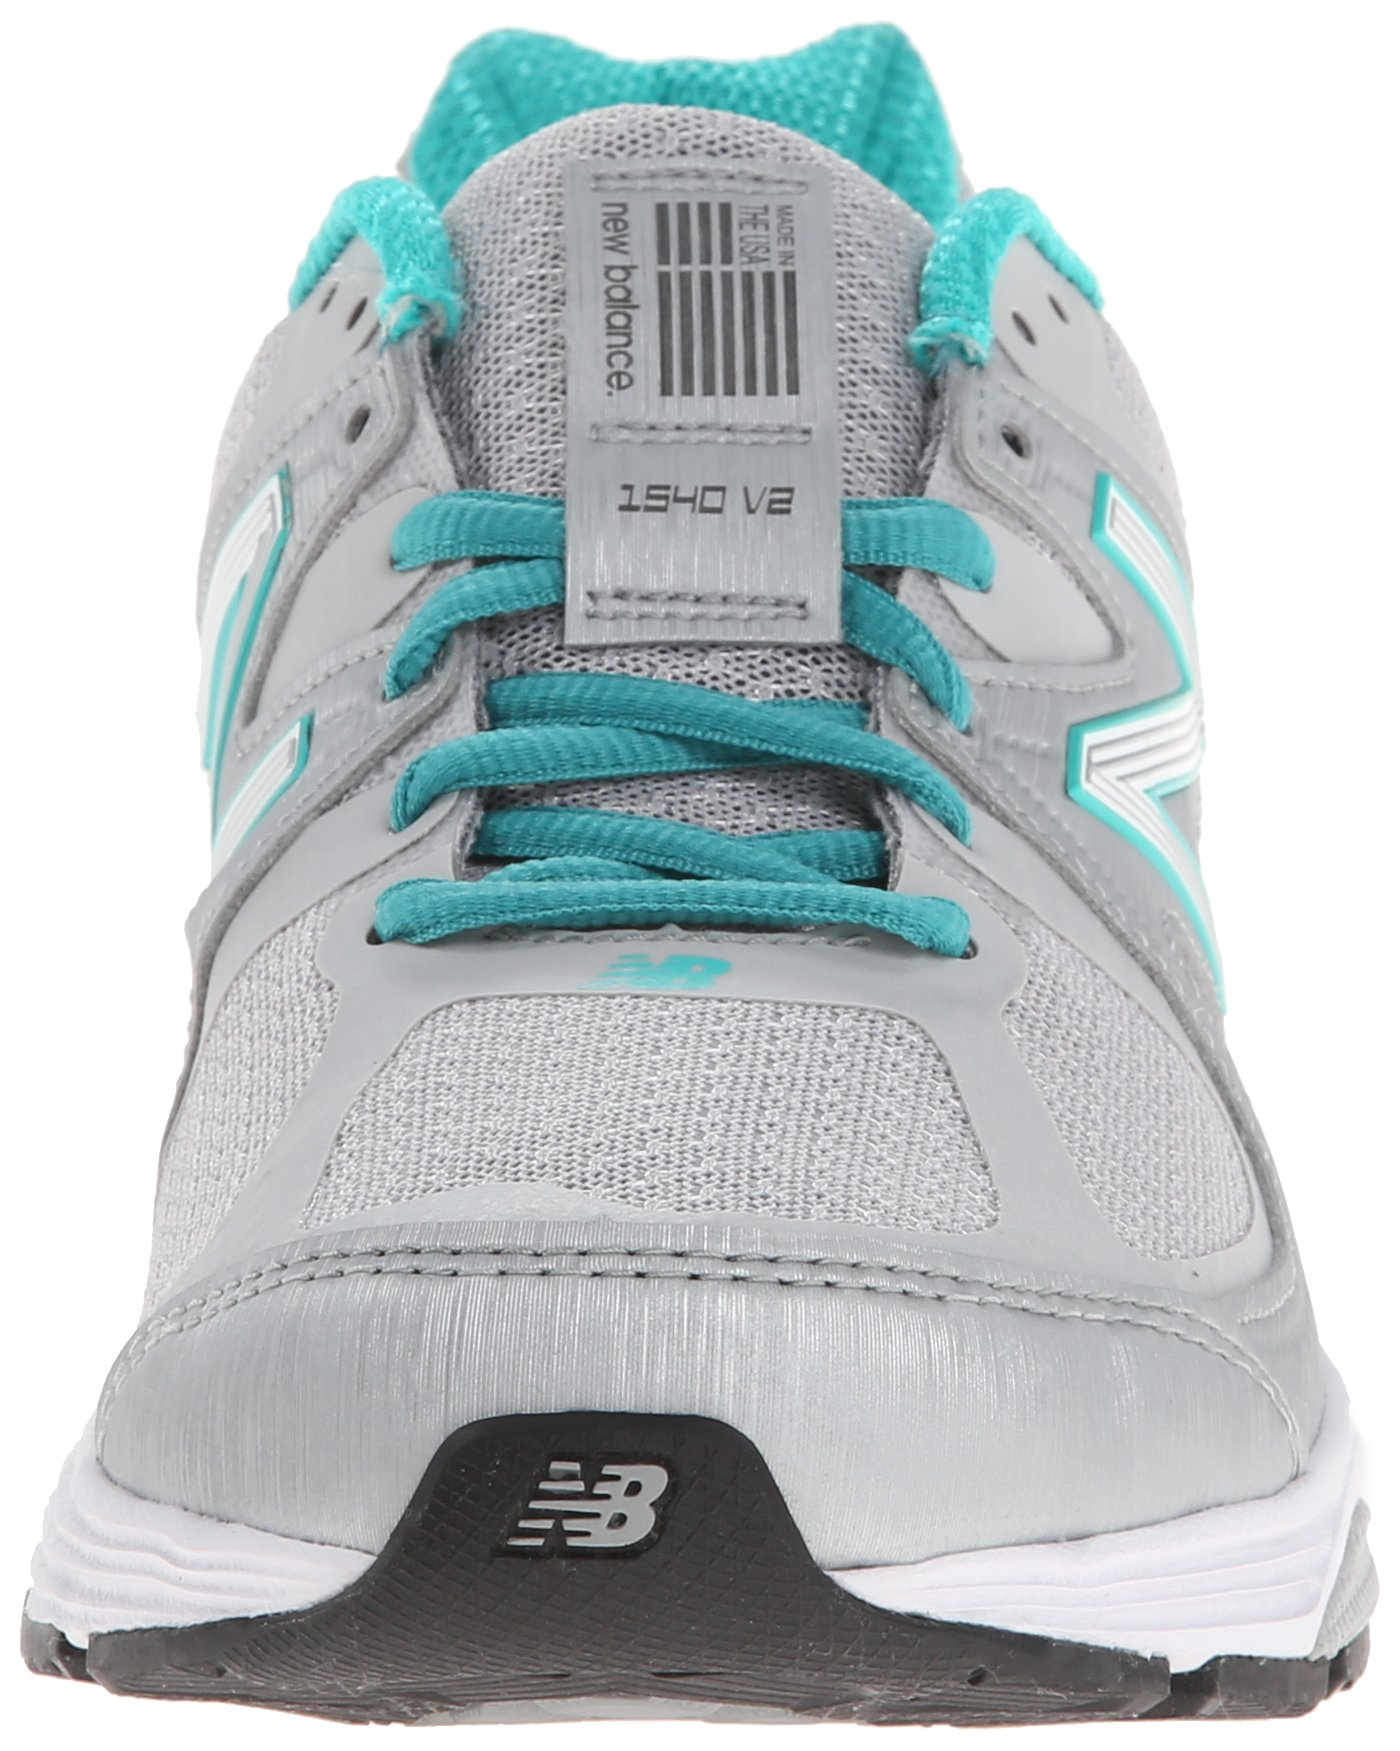 New Balance Women's W1540V2 Running Shoe Running Shoe,Silver/Grey,7 D US by New Balance (Image #4)